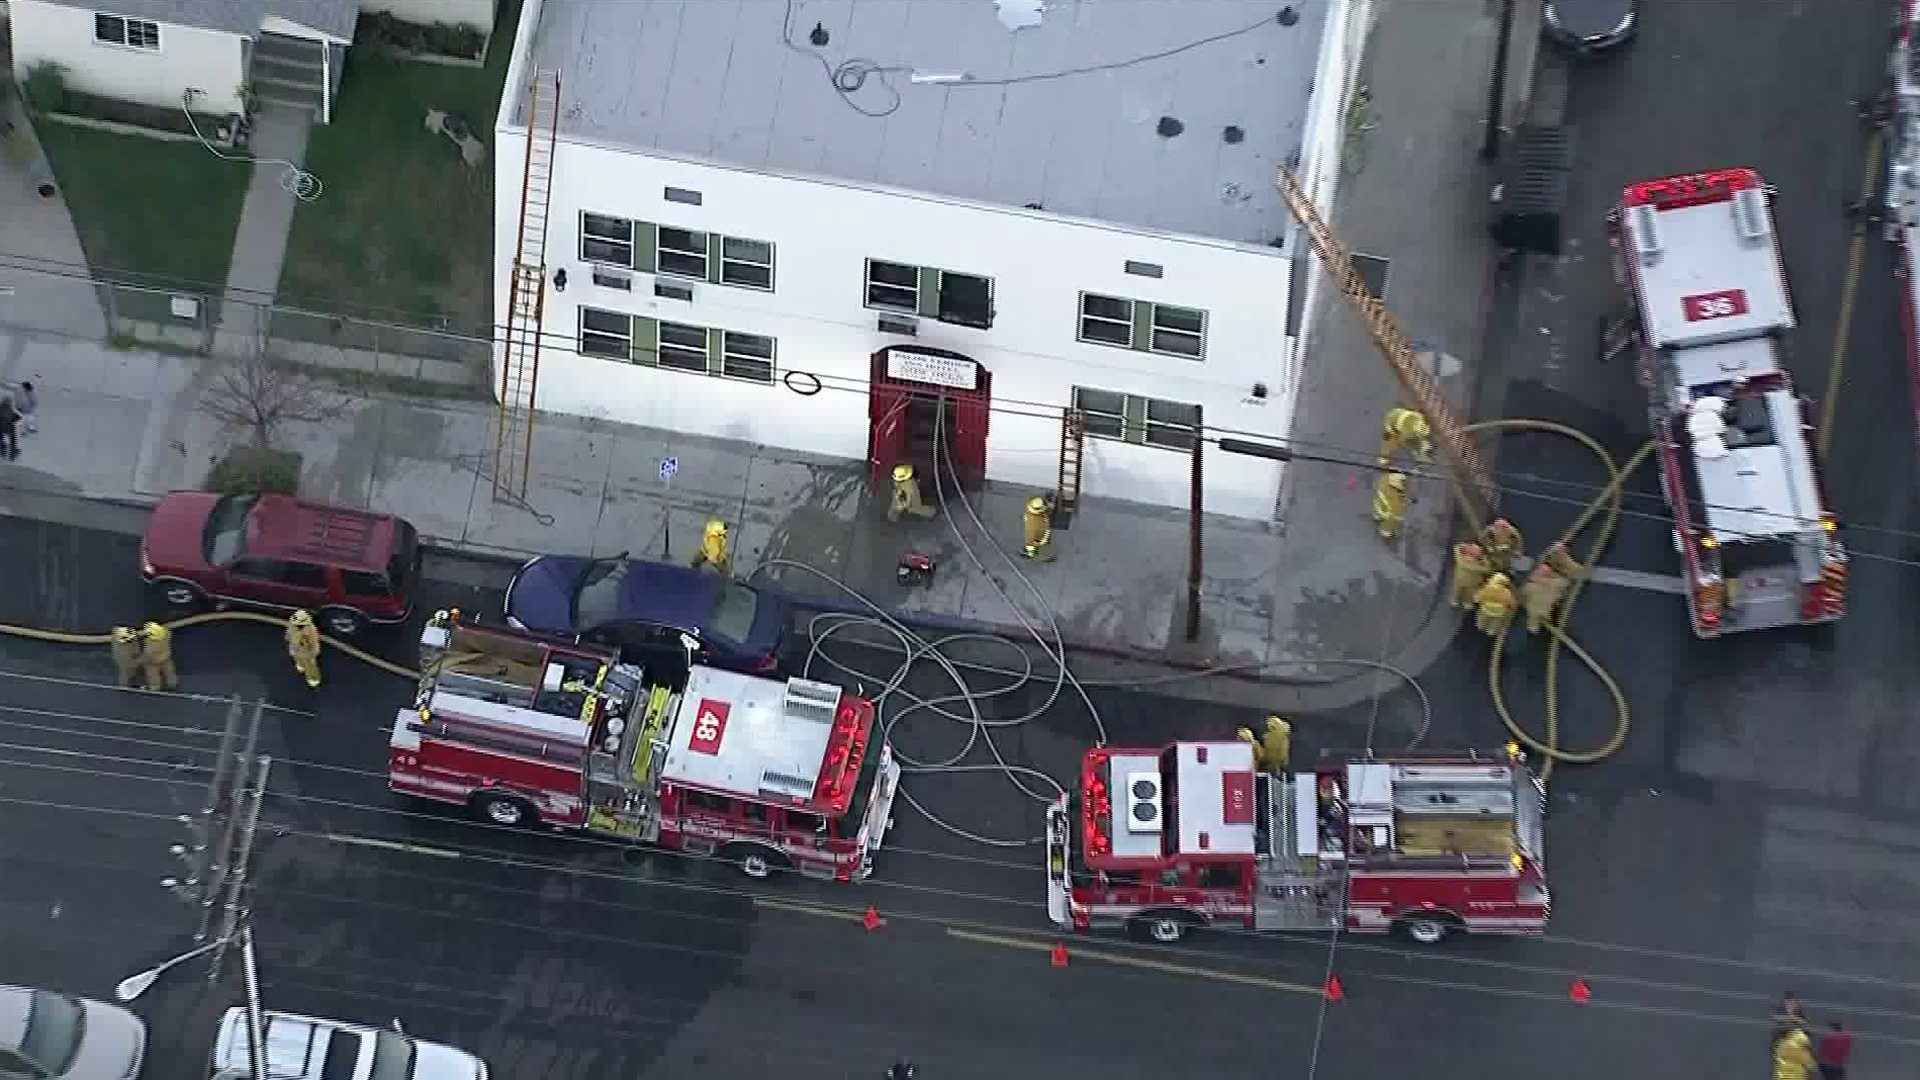 Fire crews investigate the scene where a blaze broke out at an apartment complex in San Pedro on April 26, 2018. (Credit: KTLA)